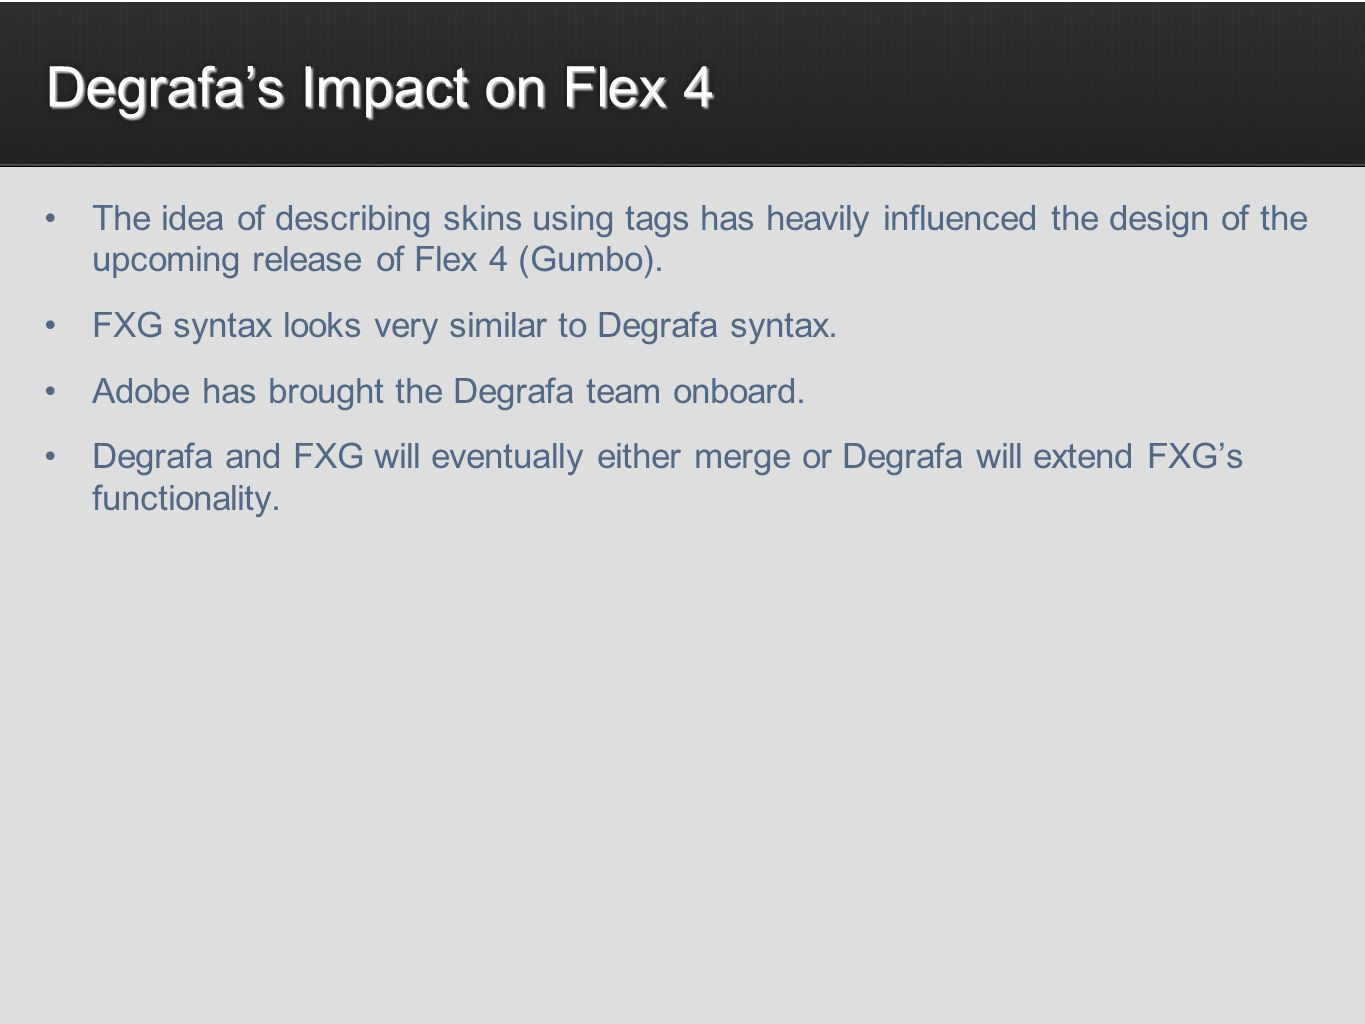 Degrafas Impact on Flex 4 The idea of describing skins using tags has heavily influenced the design of the upcoming release of Flex 4 (Gumbo).